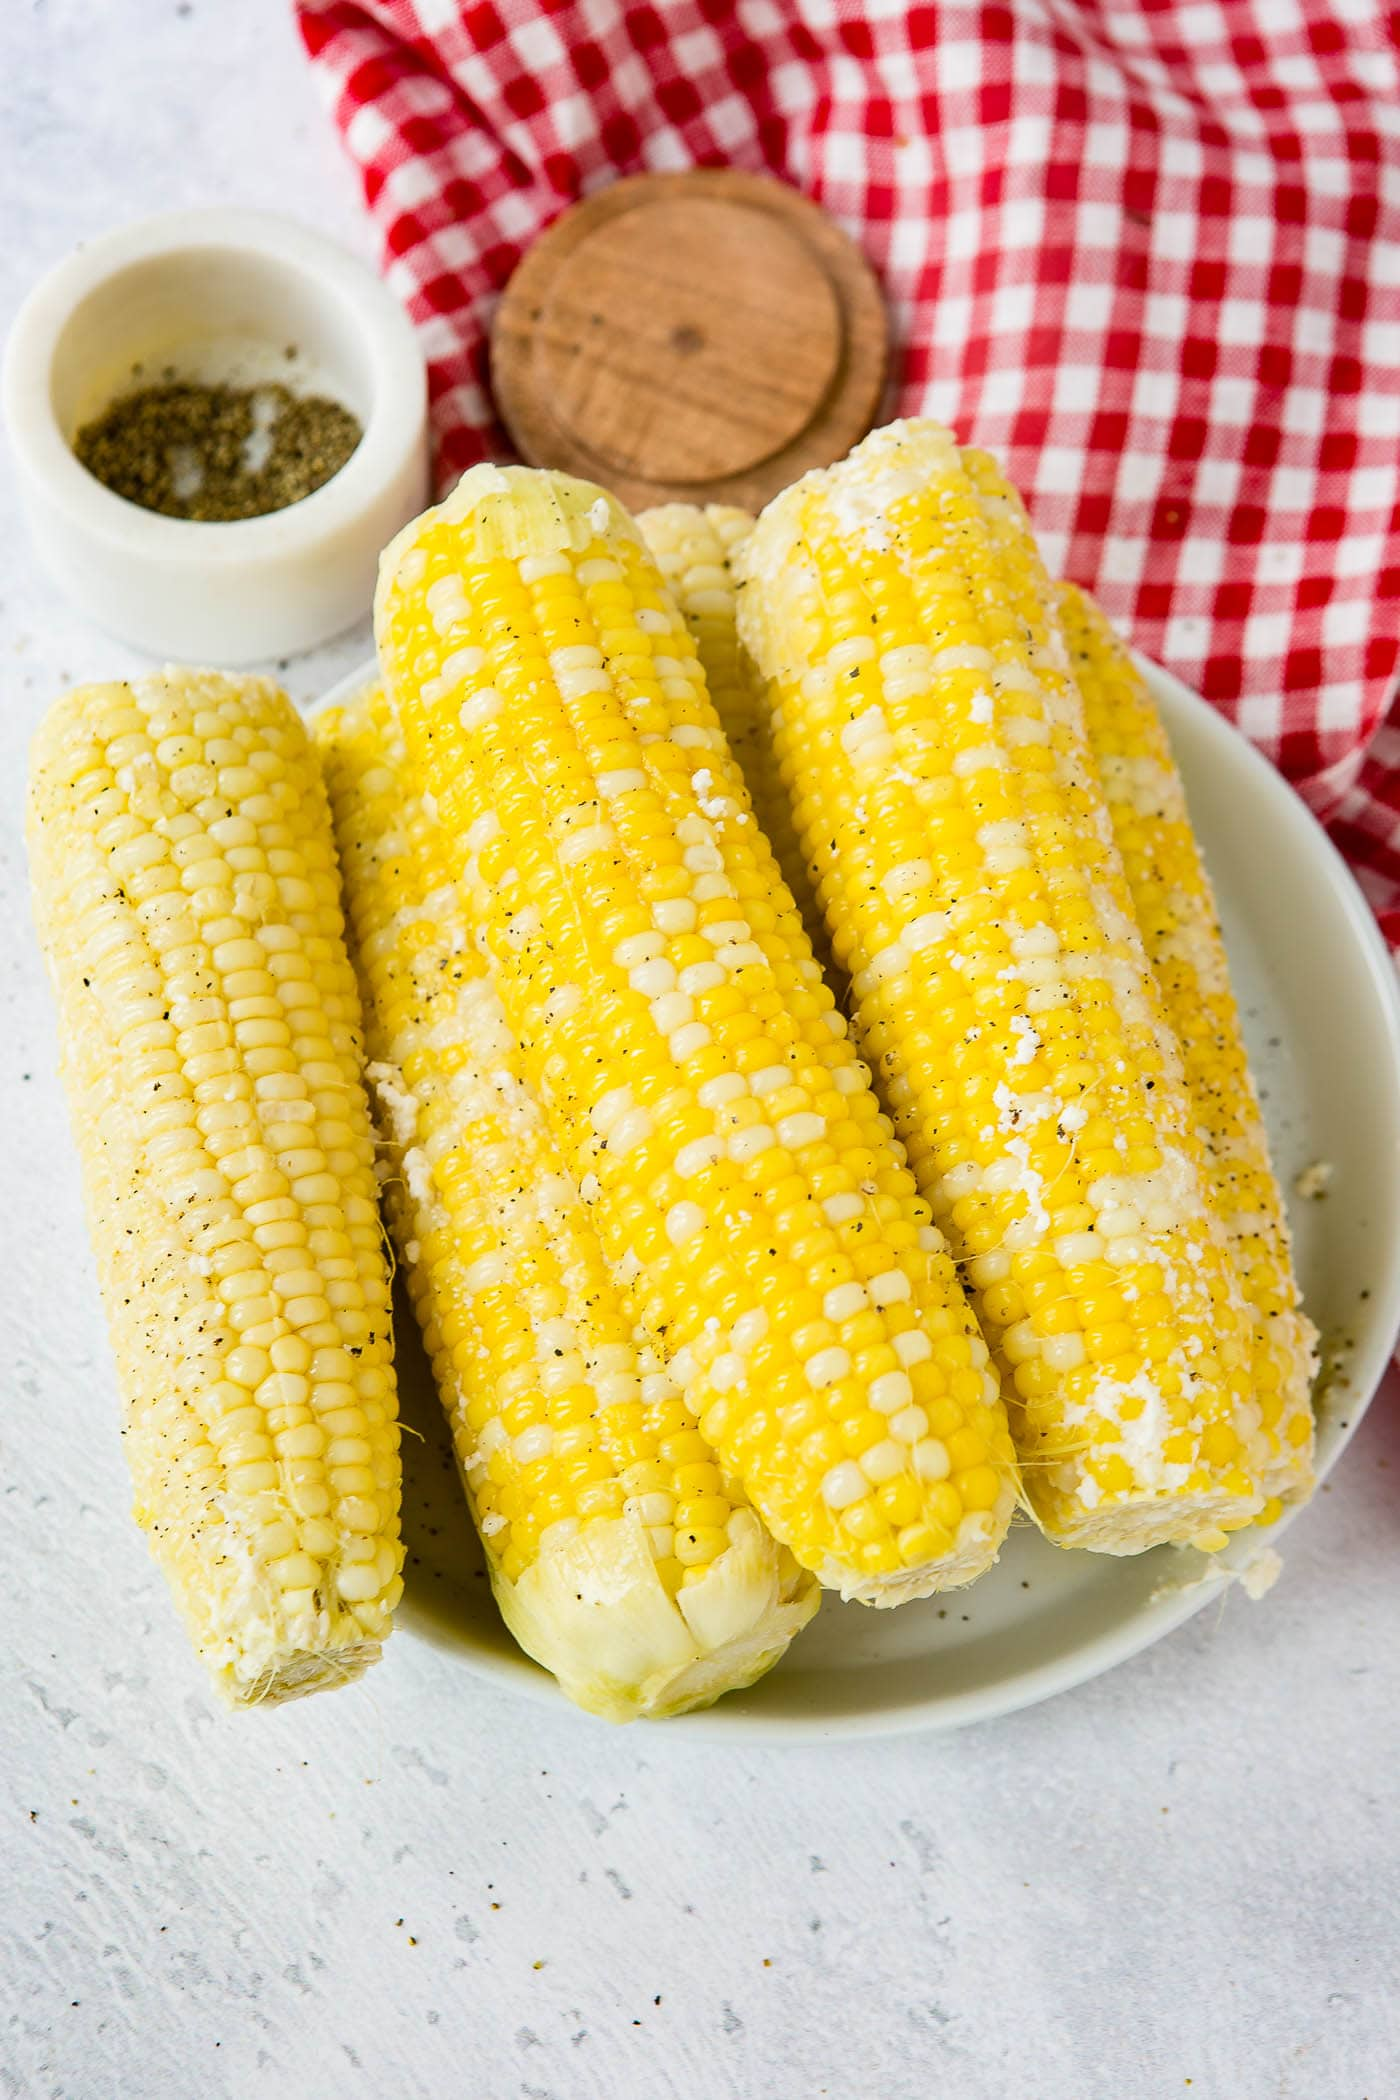 A serving plate with 5 ears of corn. The plate of corn is sitting on a red and white checked tea towel and there is a small container of